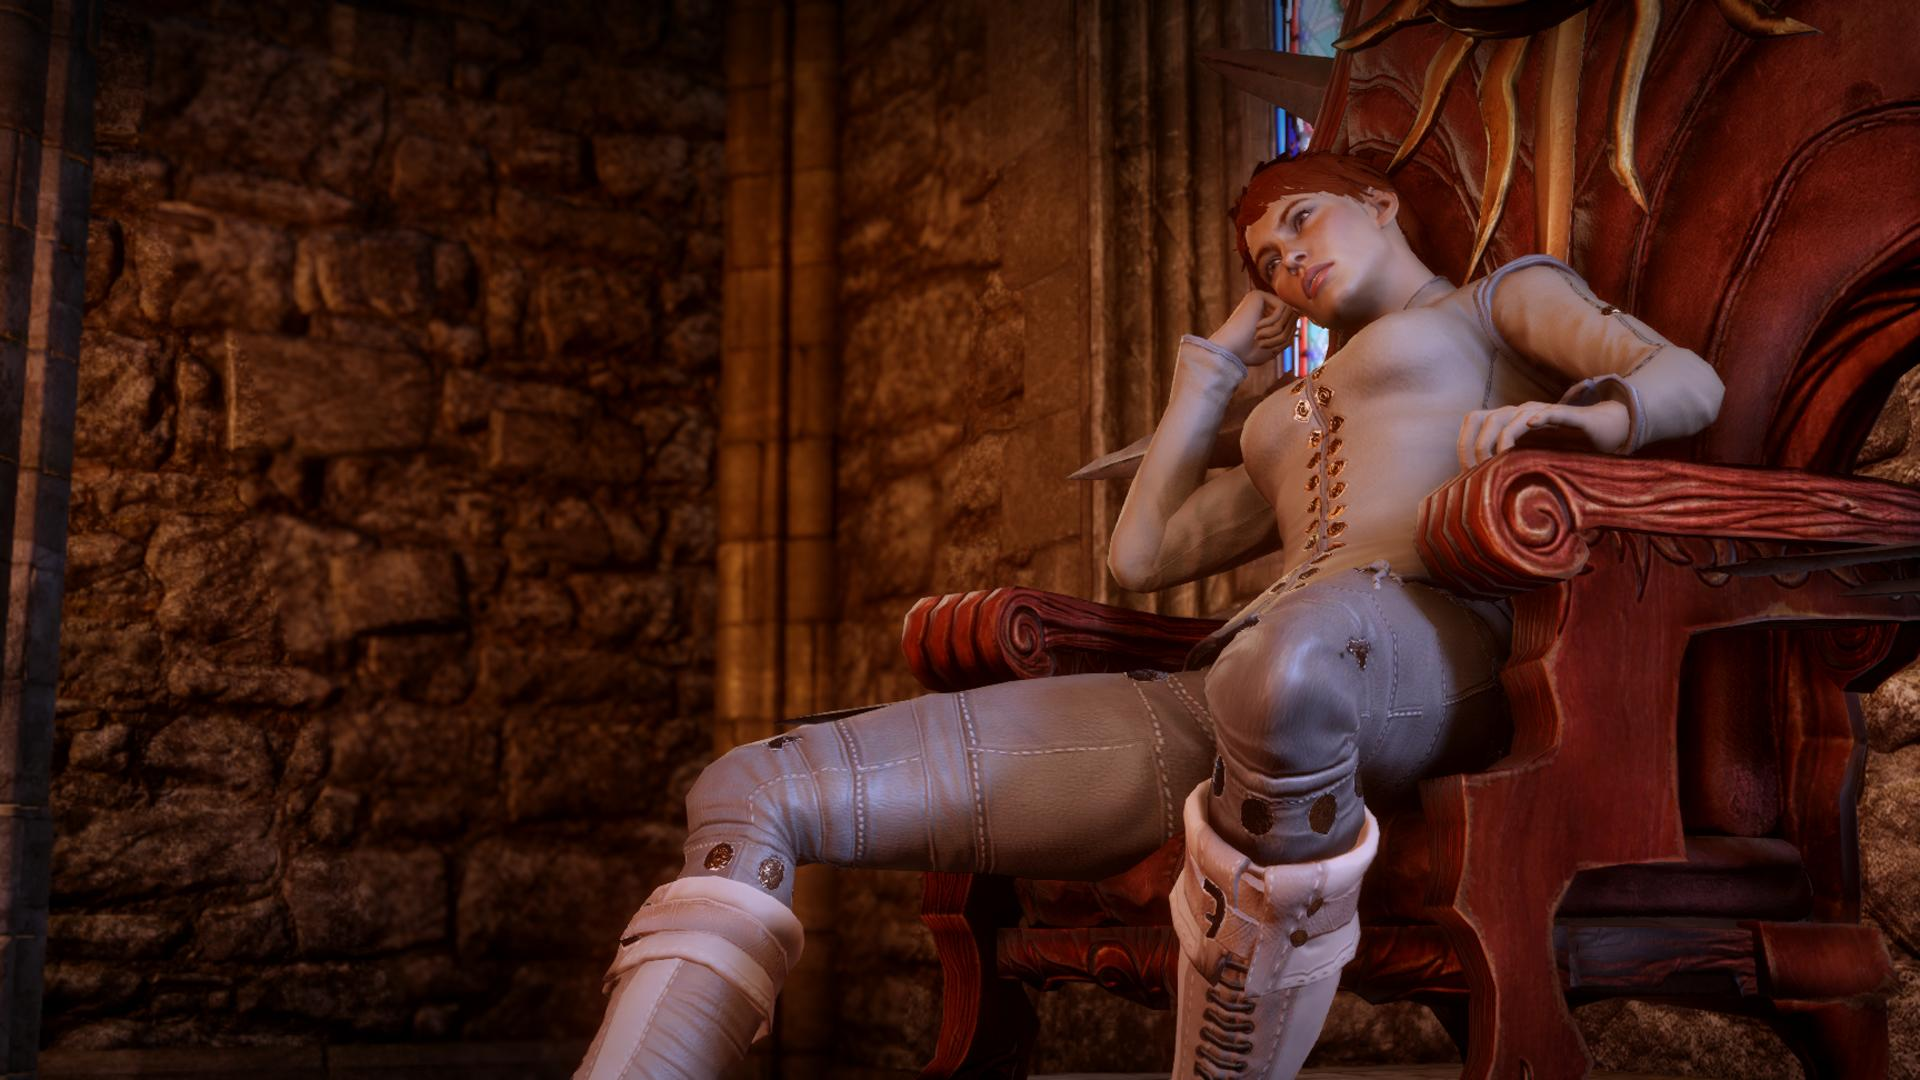 Dragon age ii nude mod naked heroes and sexy armor